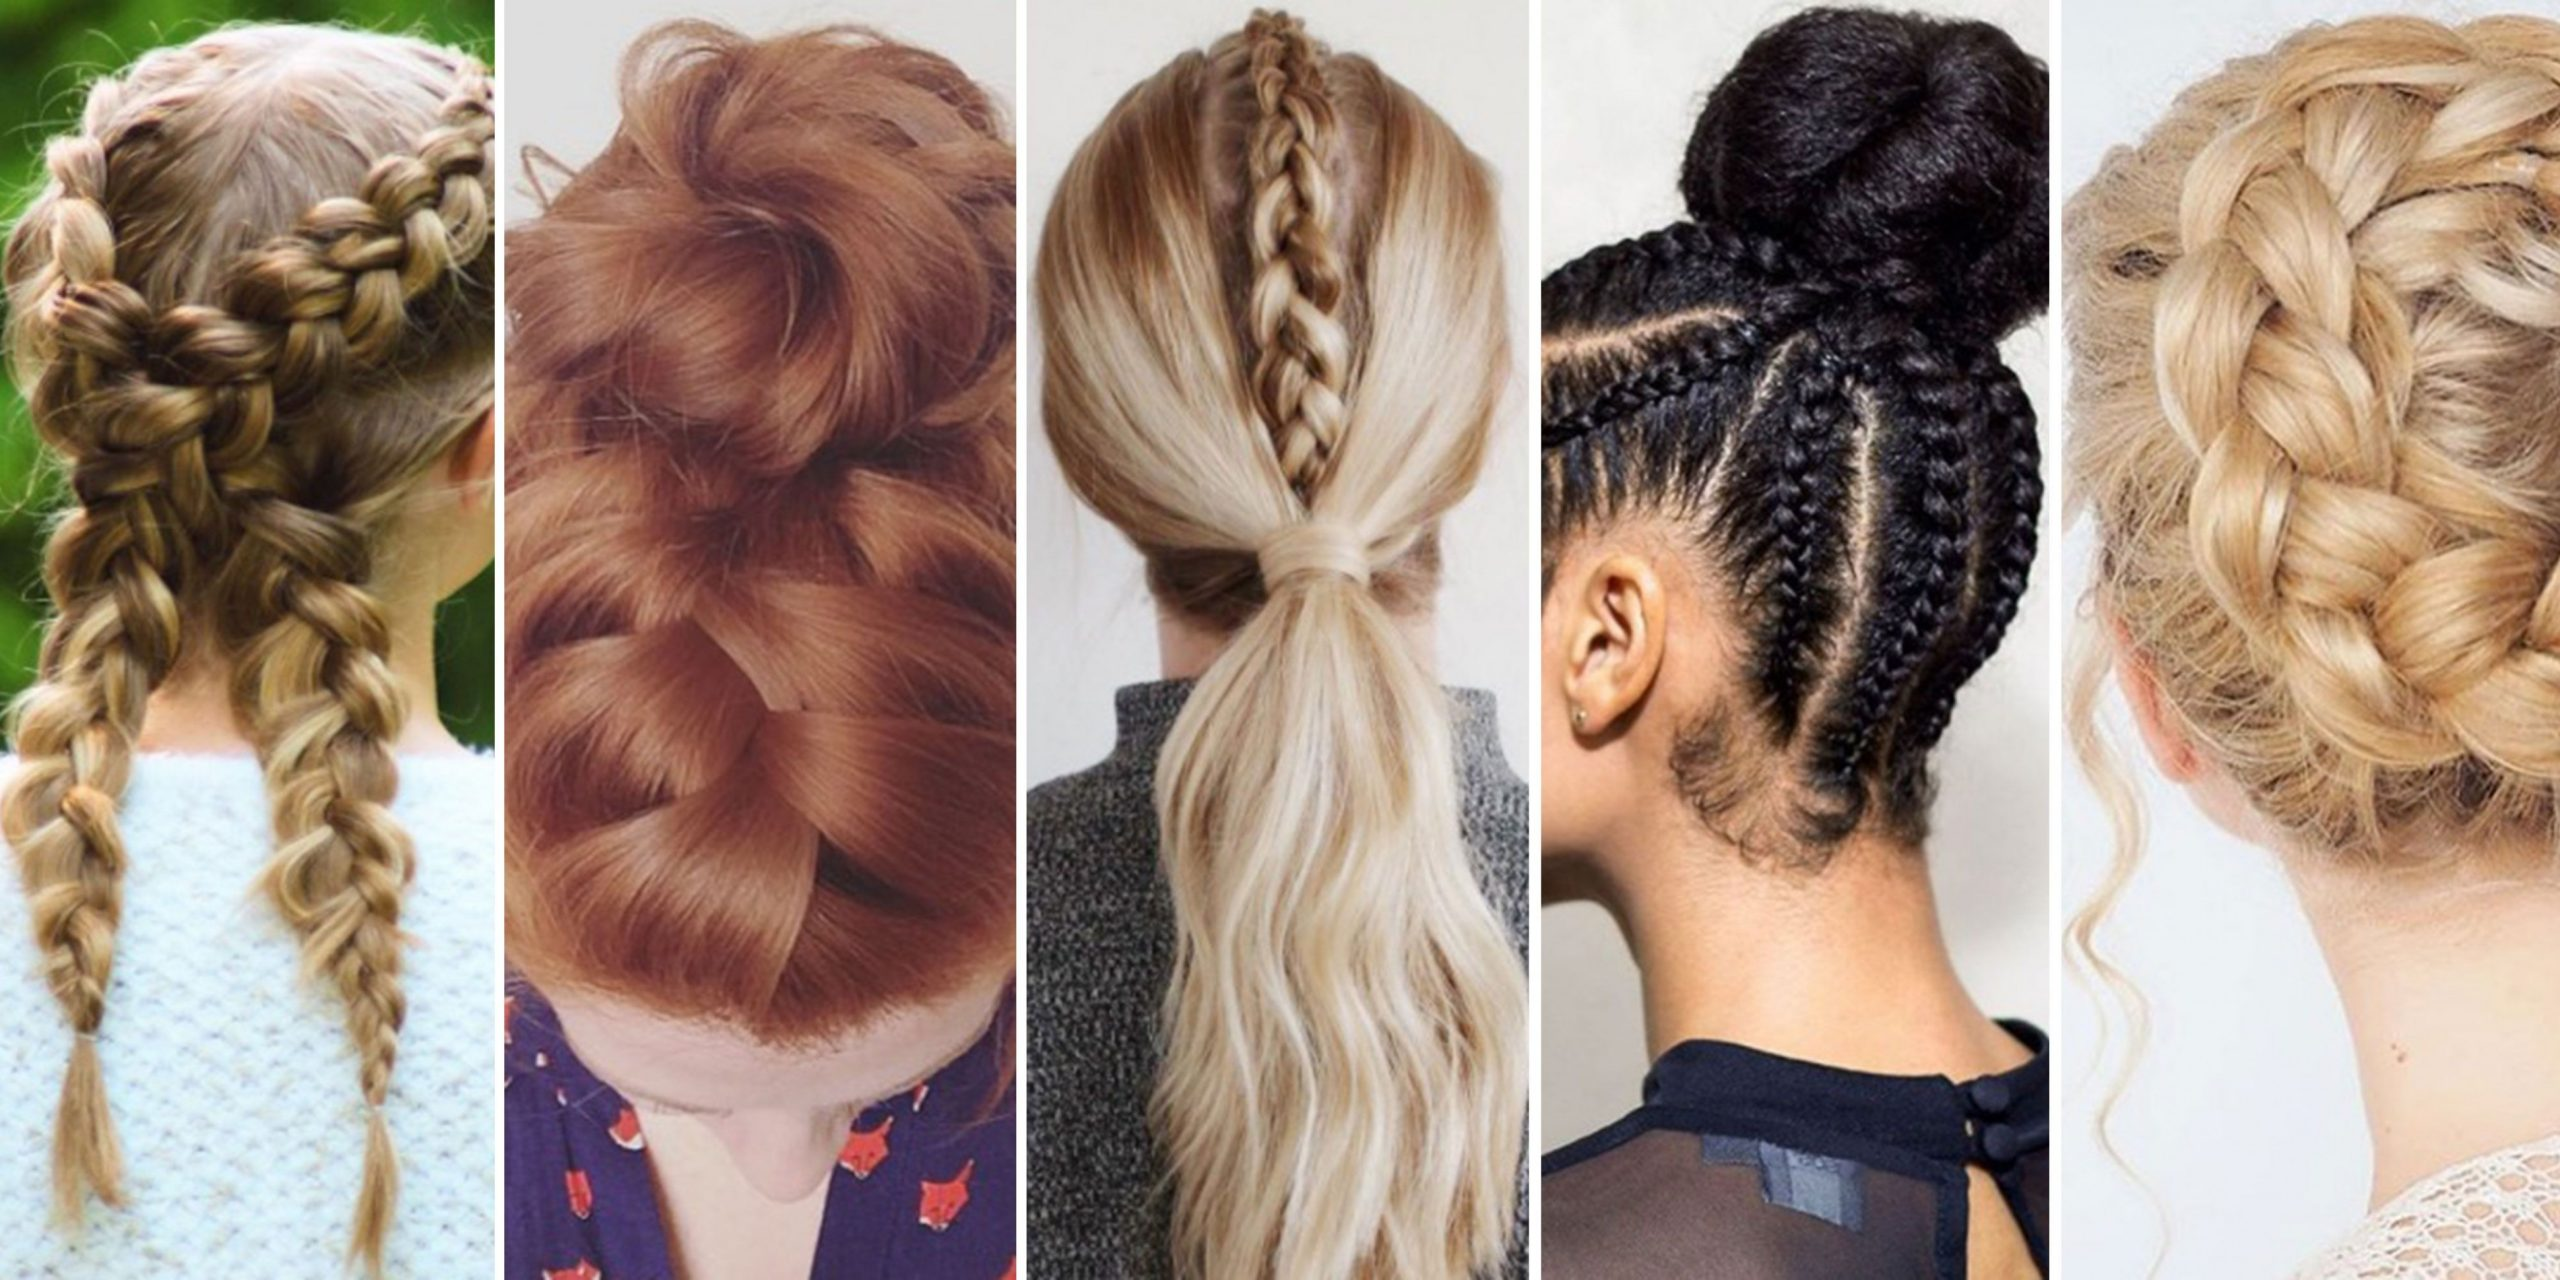 Alternative Workout Hairstyles Workout Hairstyles For Long Hair